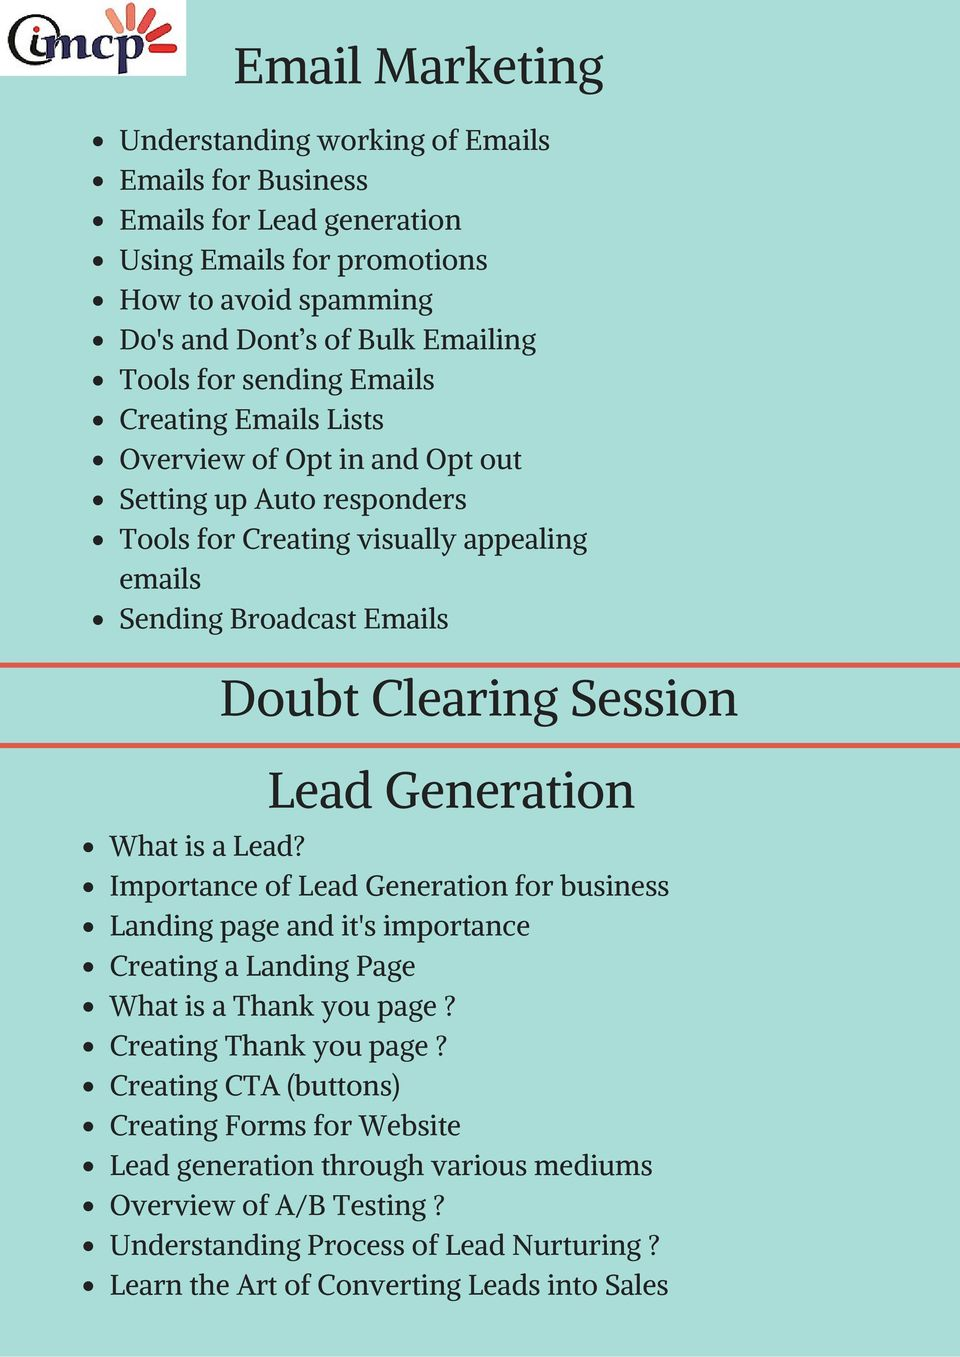 Lead Generation What is a Lead? Importance of Lead Generation for business Landing page and it's importance Creating a Landing Page What is a Thank you page? Creating Thank you page?